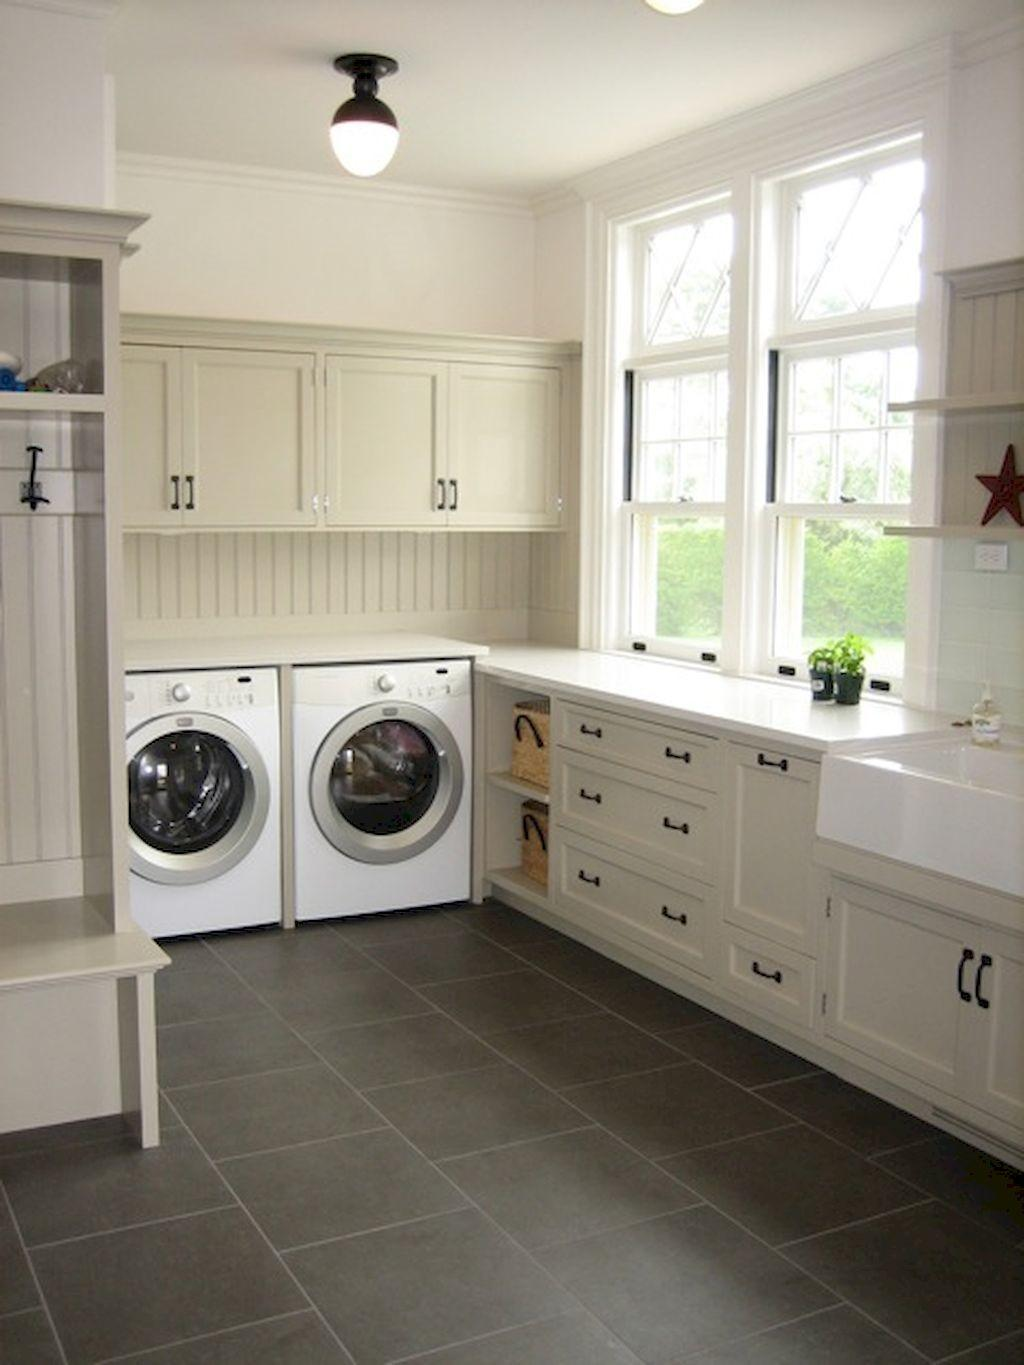 Best Inspire Laundry Room Organization Ideas Wholiving